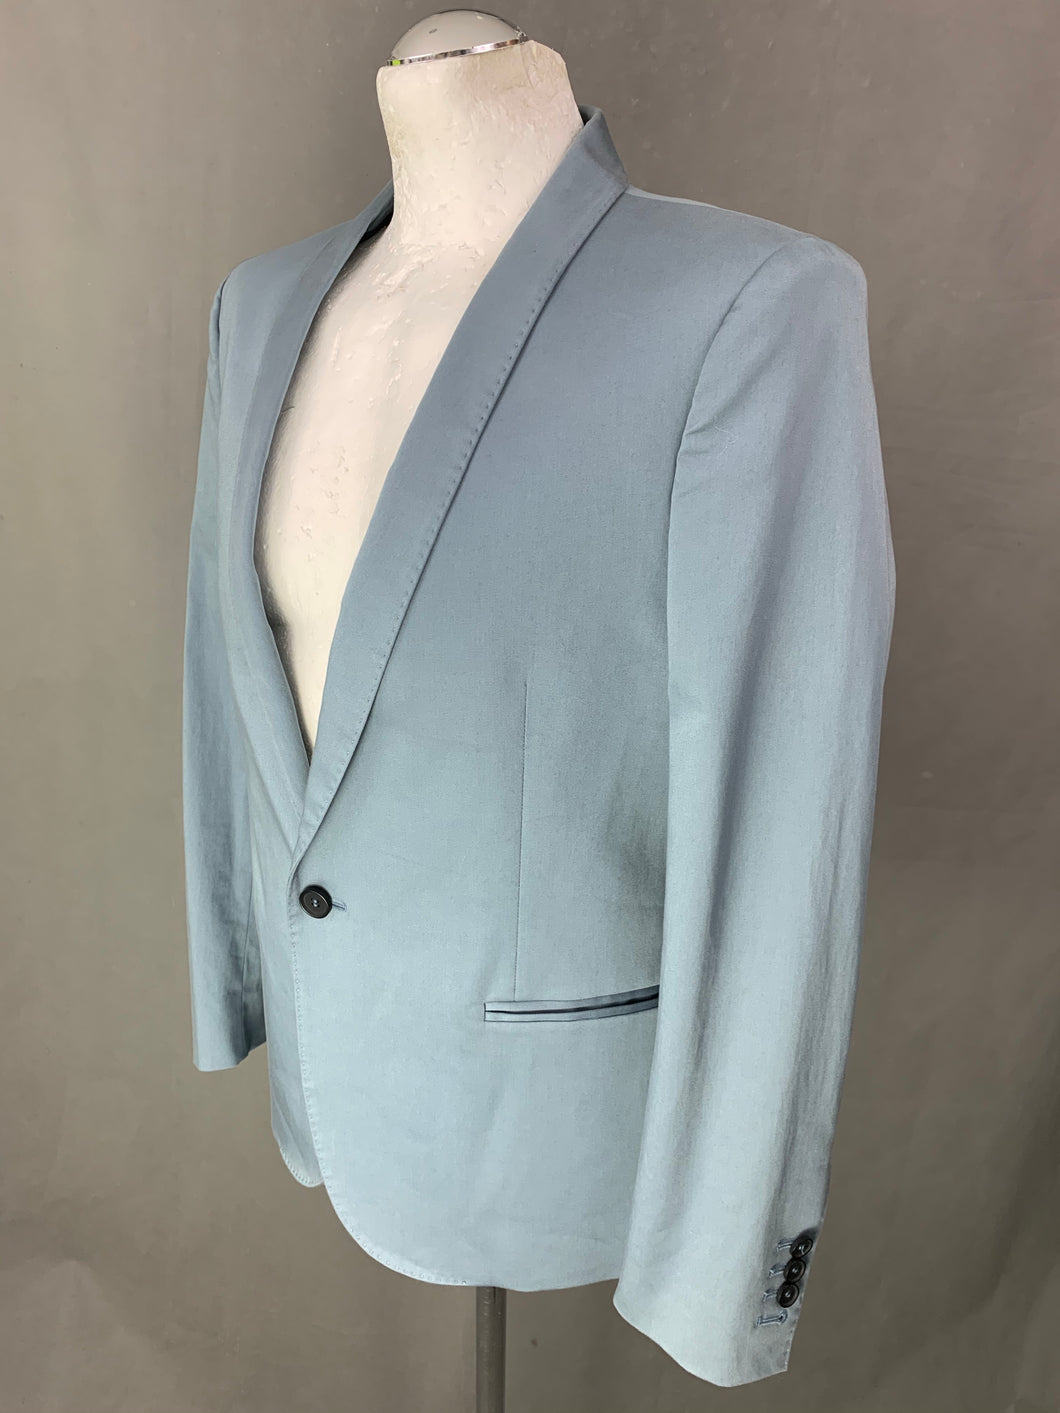 New THE KOOPLES BLAZER / SPORTS JACKET Size IT 50 - 40